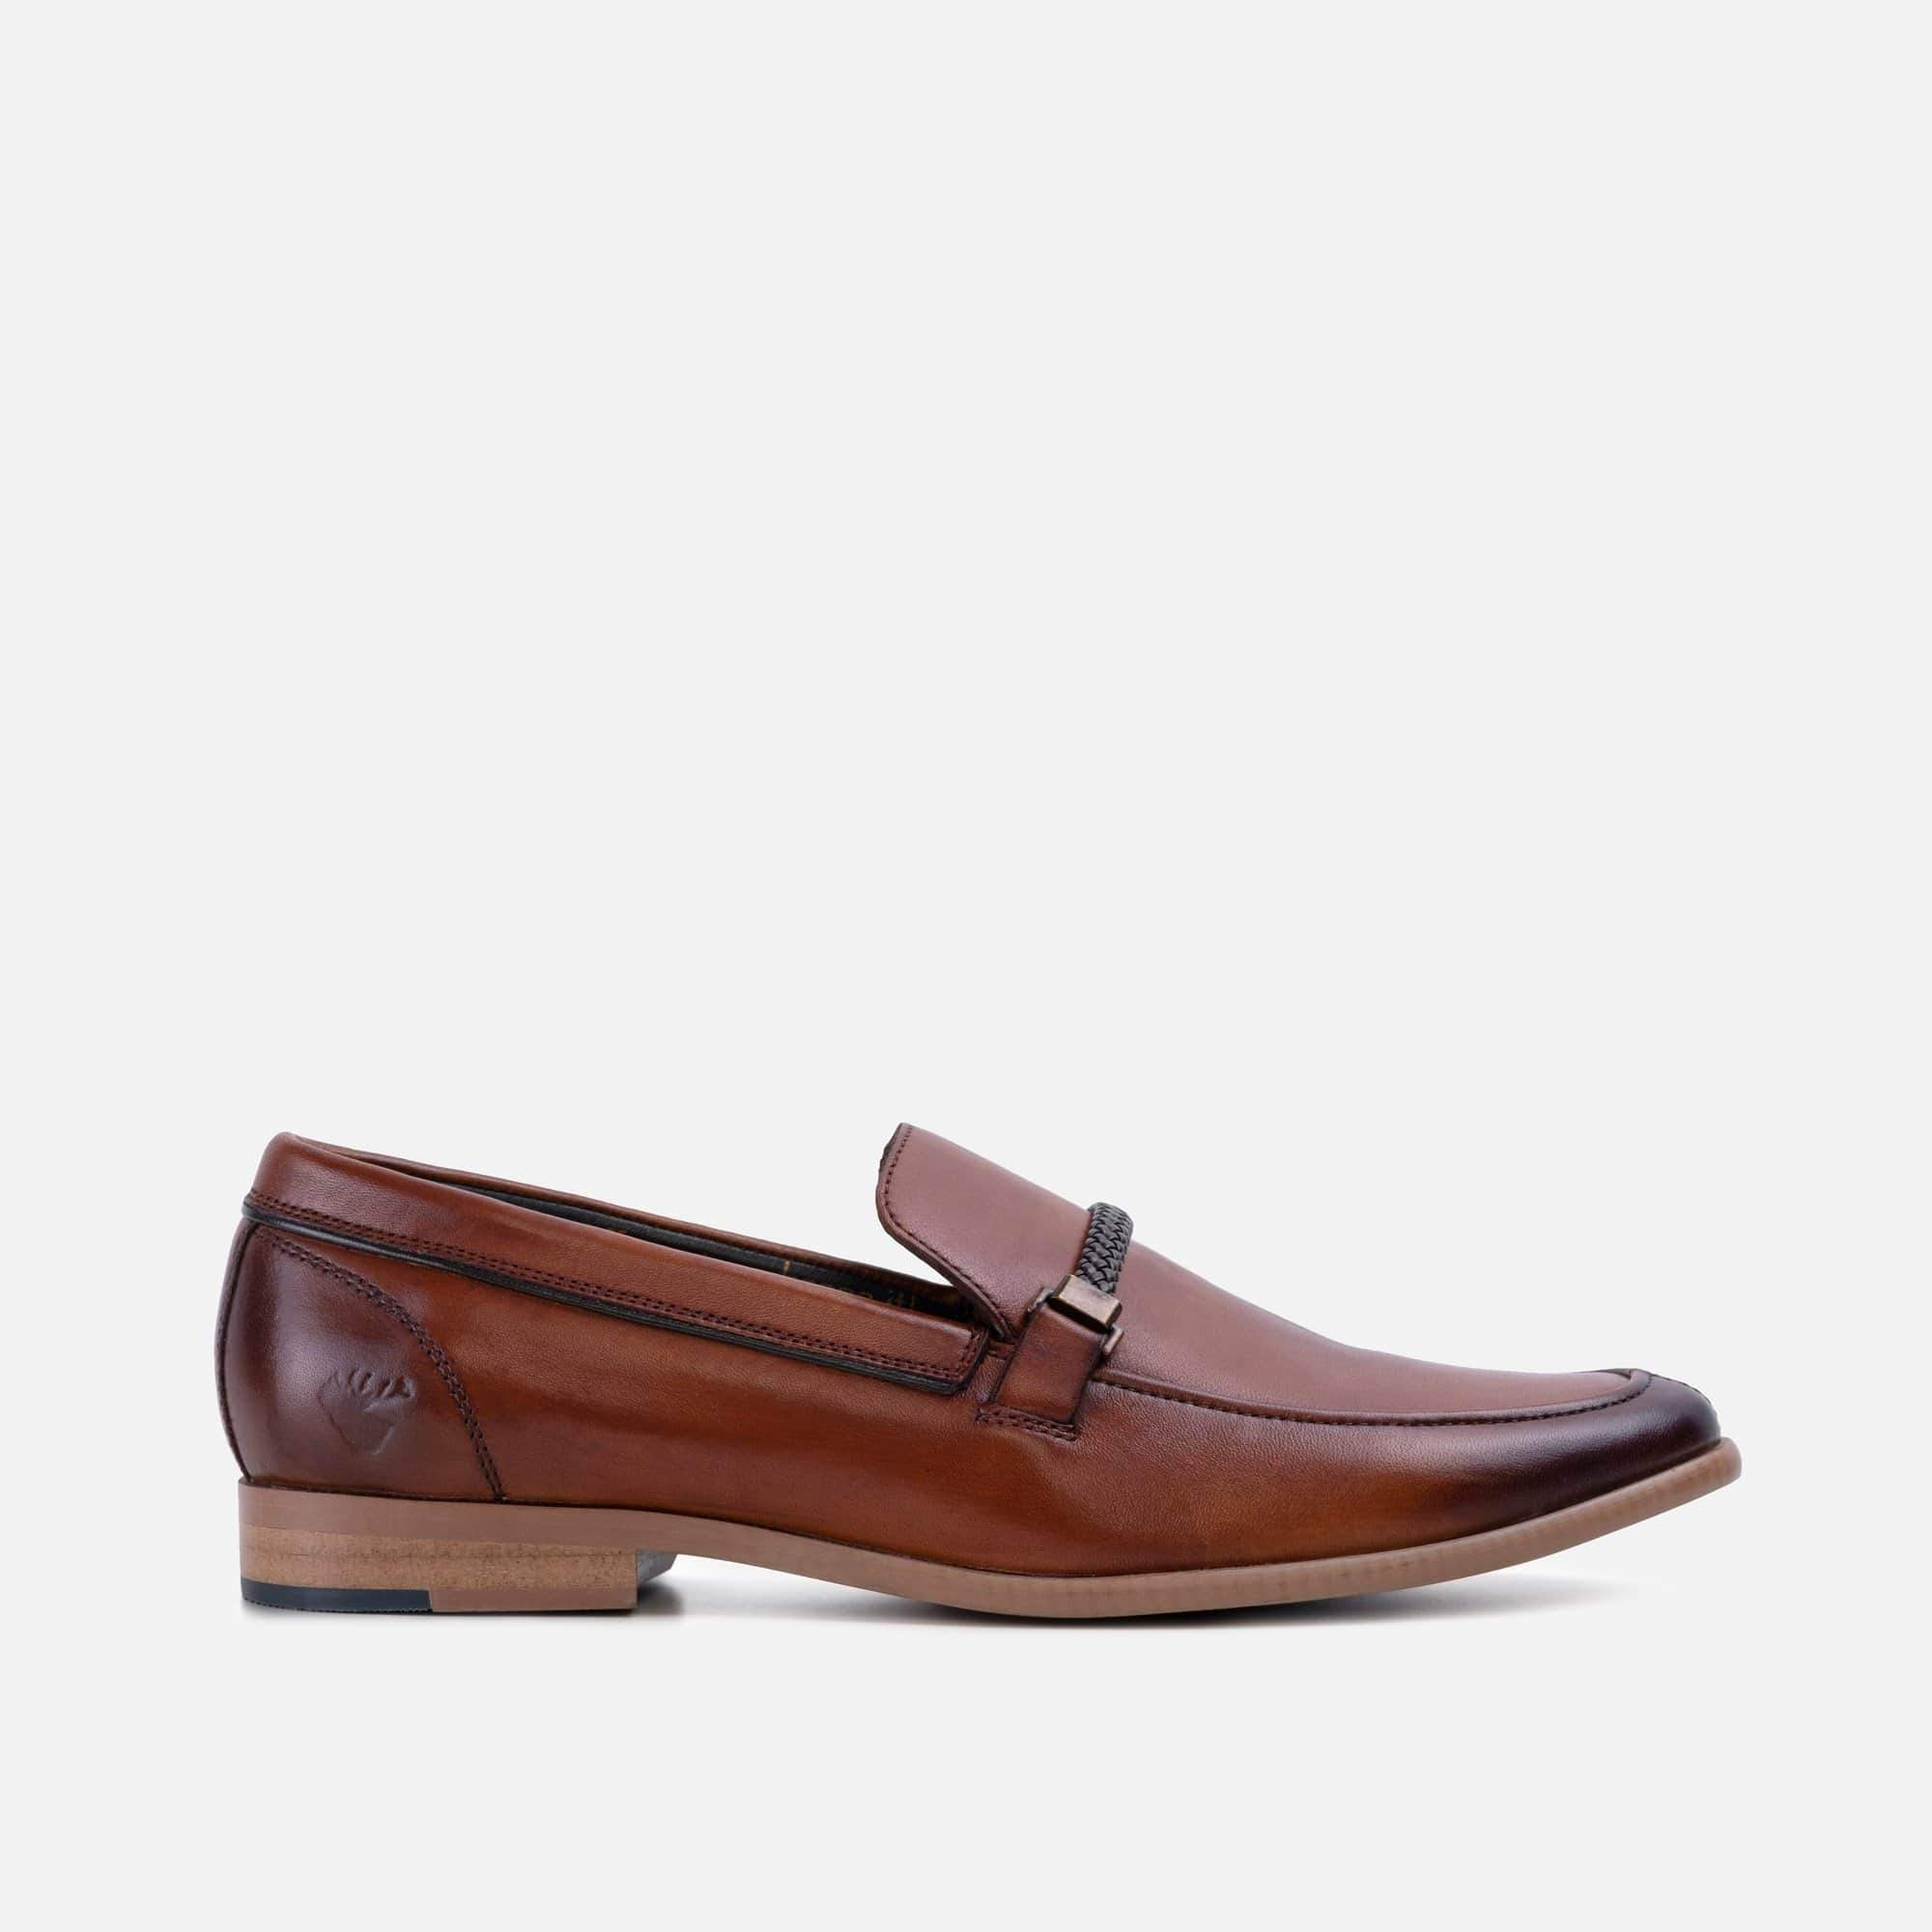 Smart casual tan leather loafer for men with metal and leather saddle trim